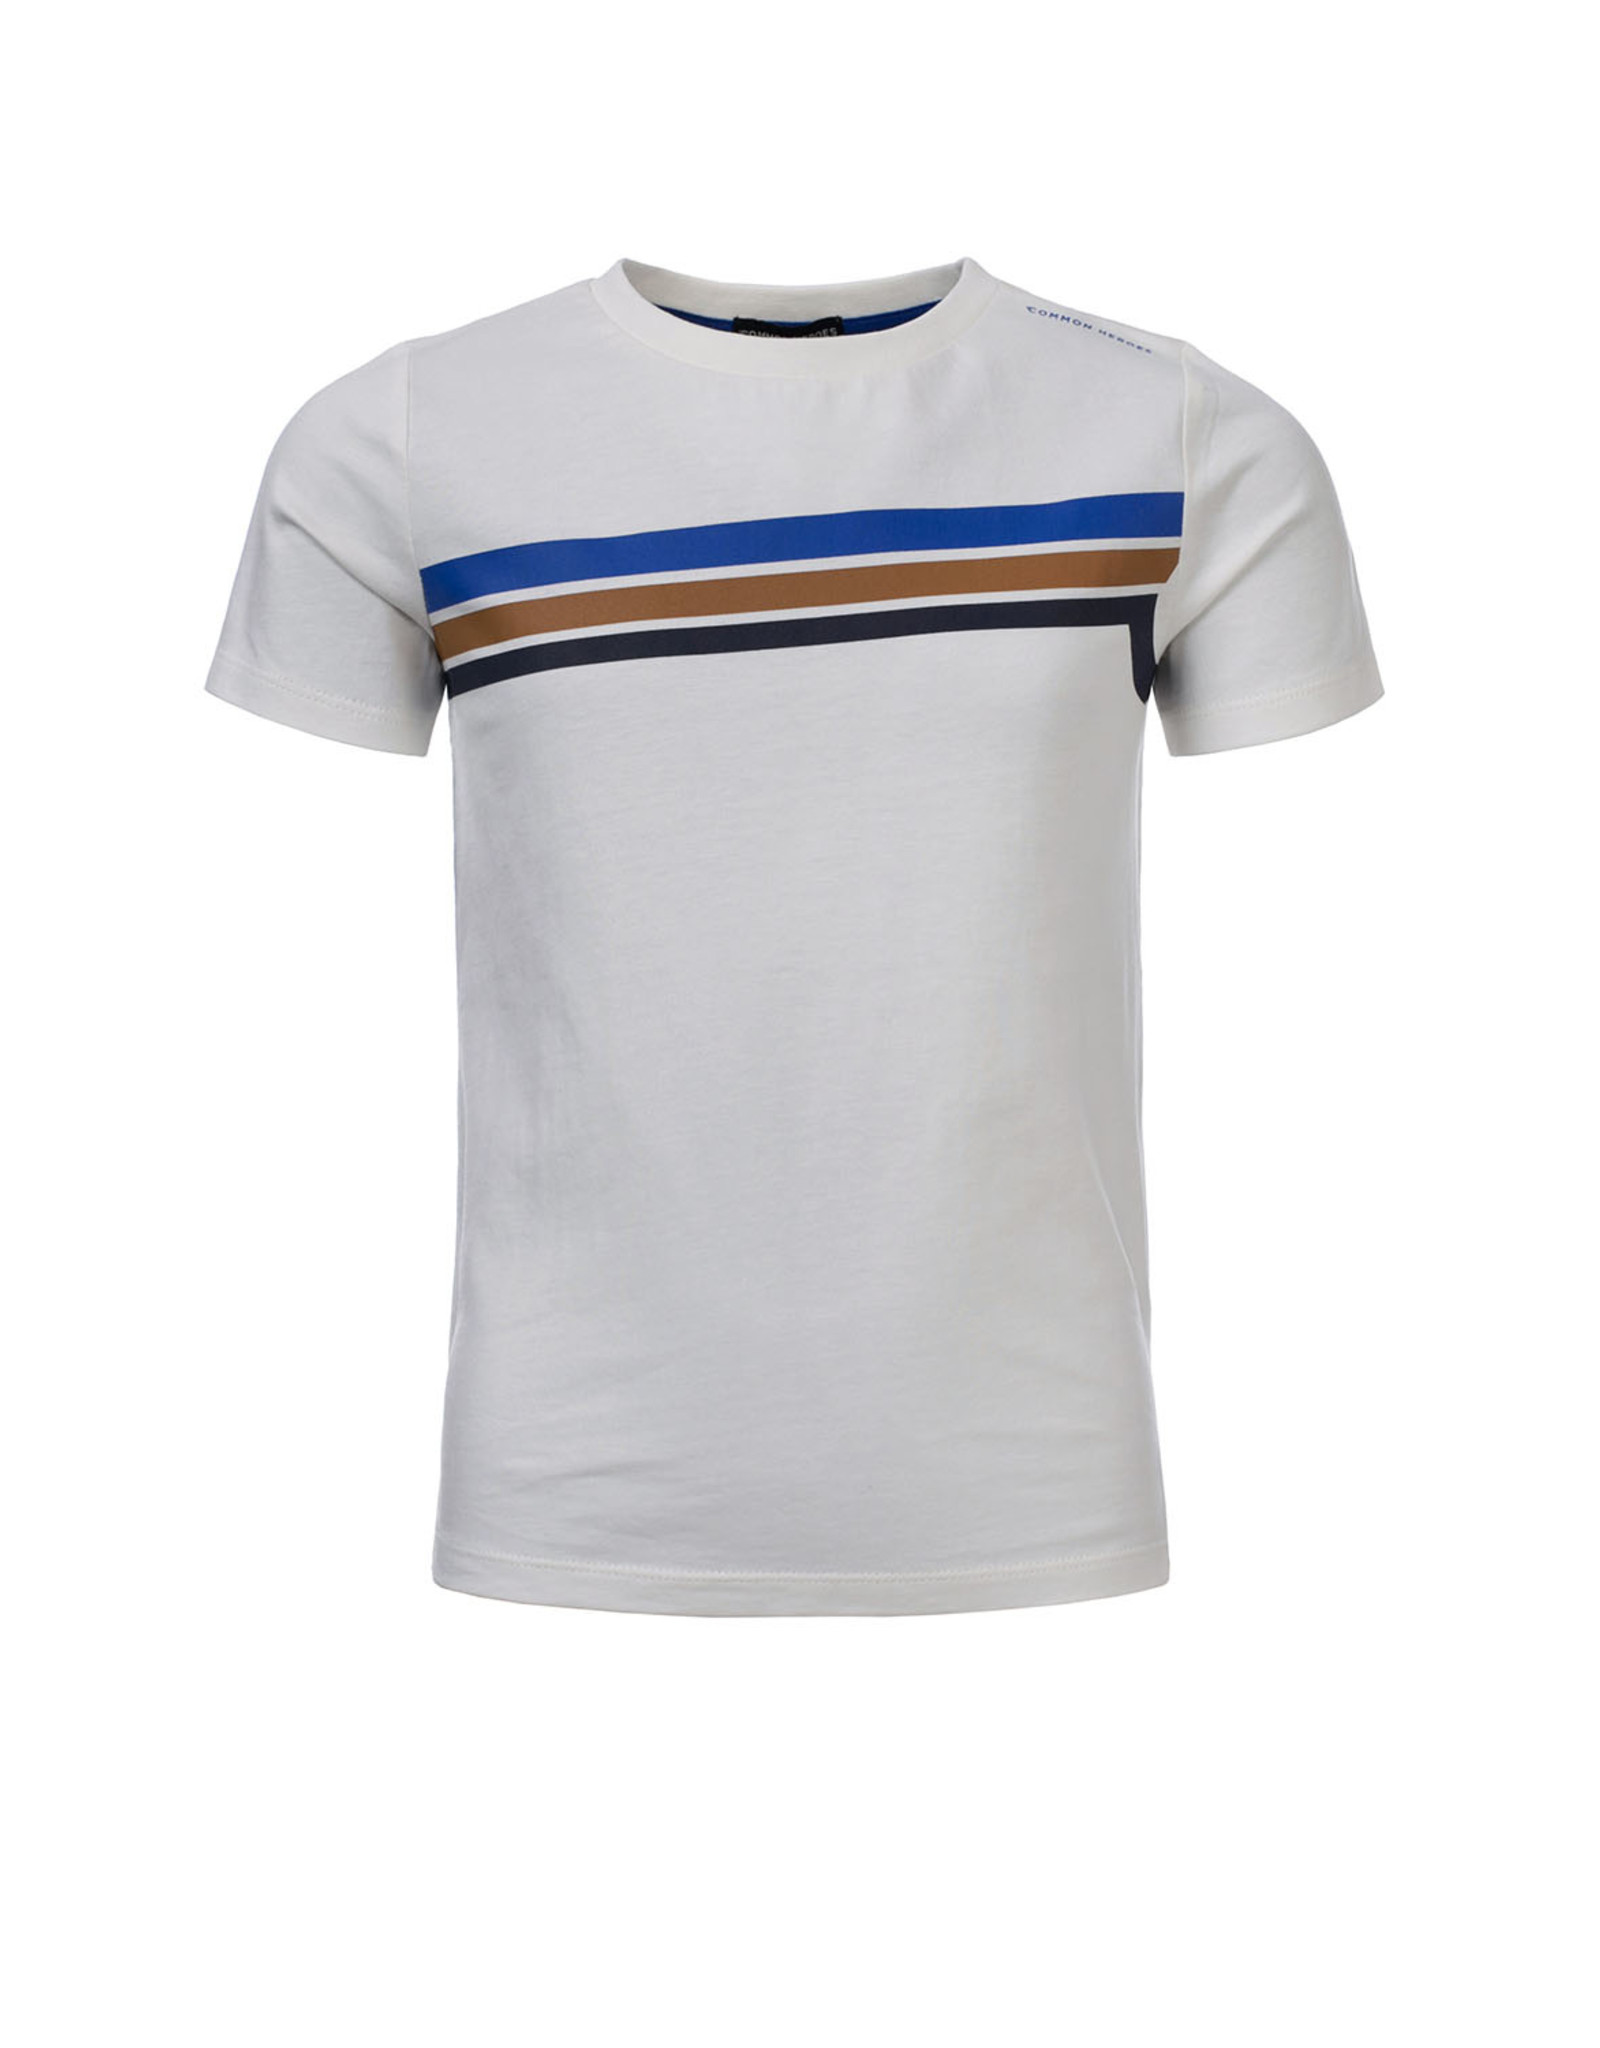 Common Heroes TIM T-shirt ivory